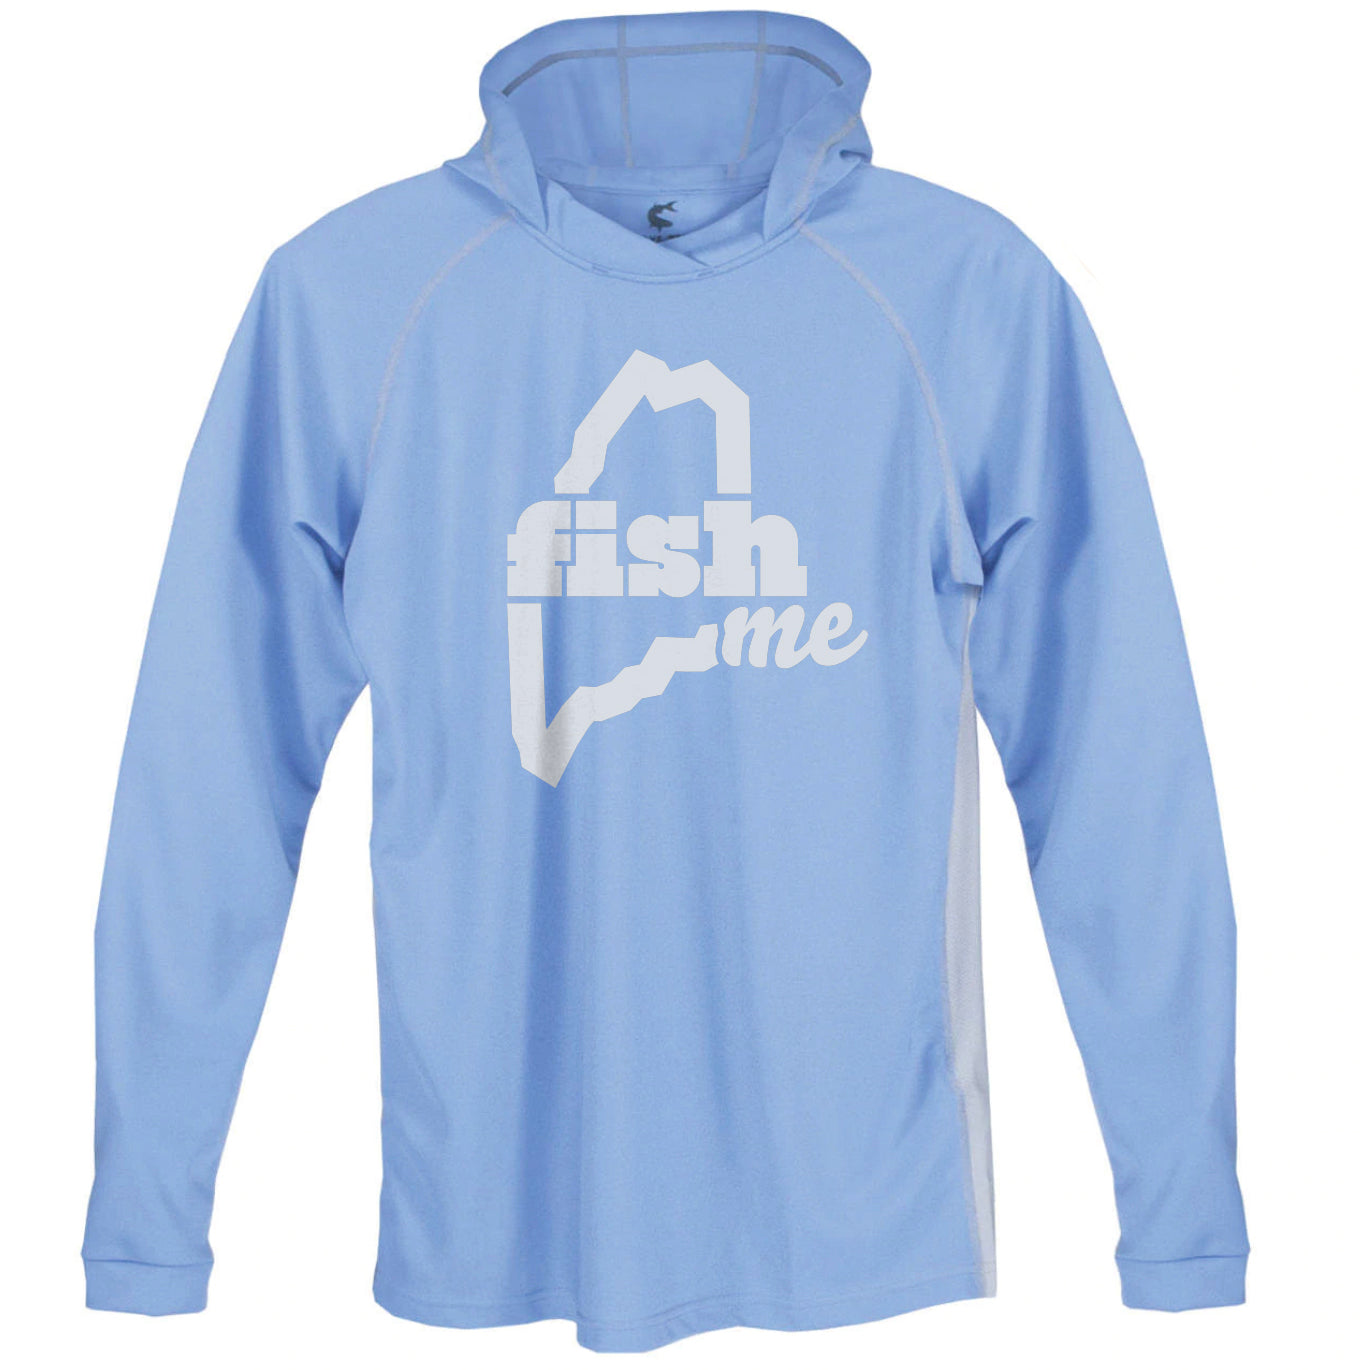 daf06916d The FREEWT Long Sleeve Shirt is designed and built to keep... View full  product details · FishME x 12WT OCEANwt Hoodie (Clearblue Ghost)